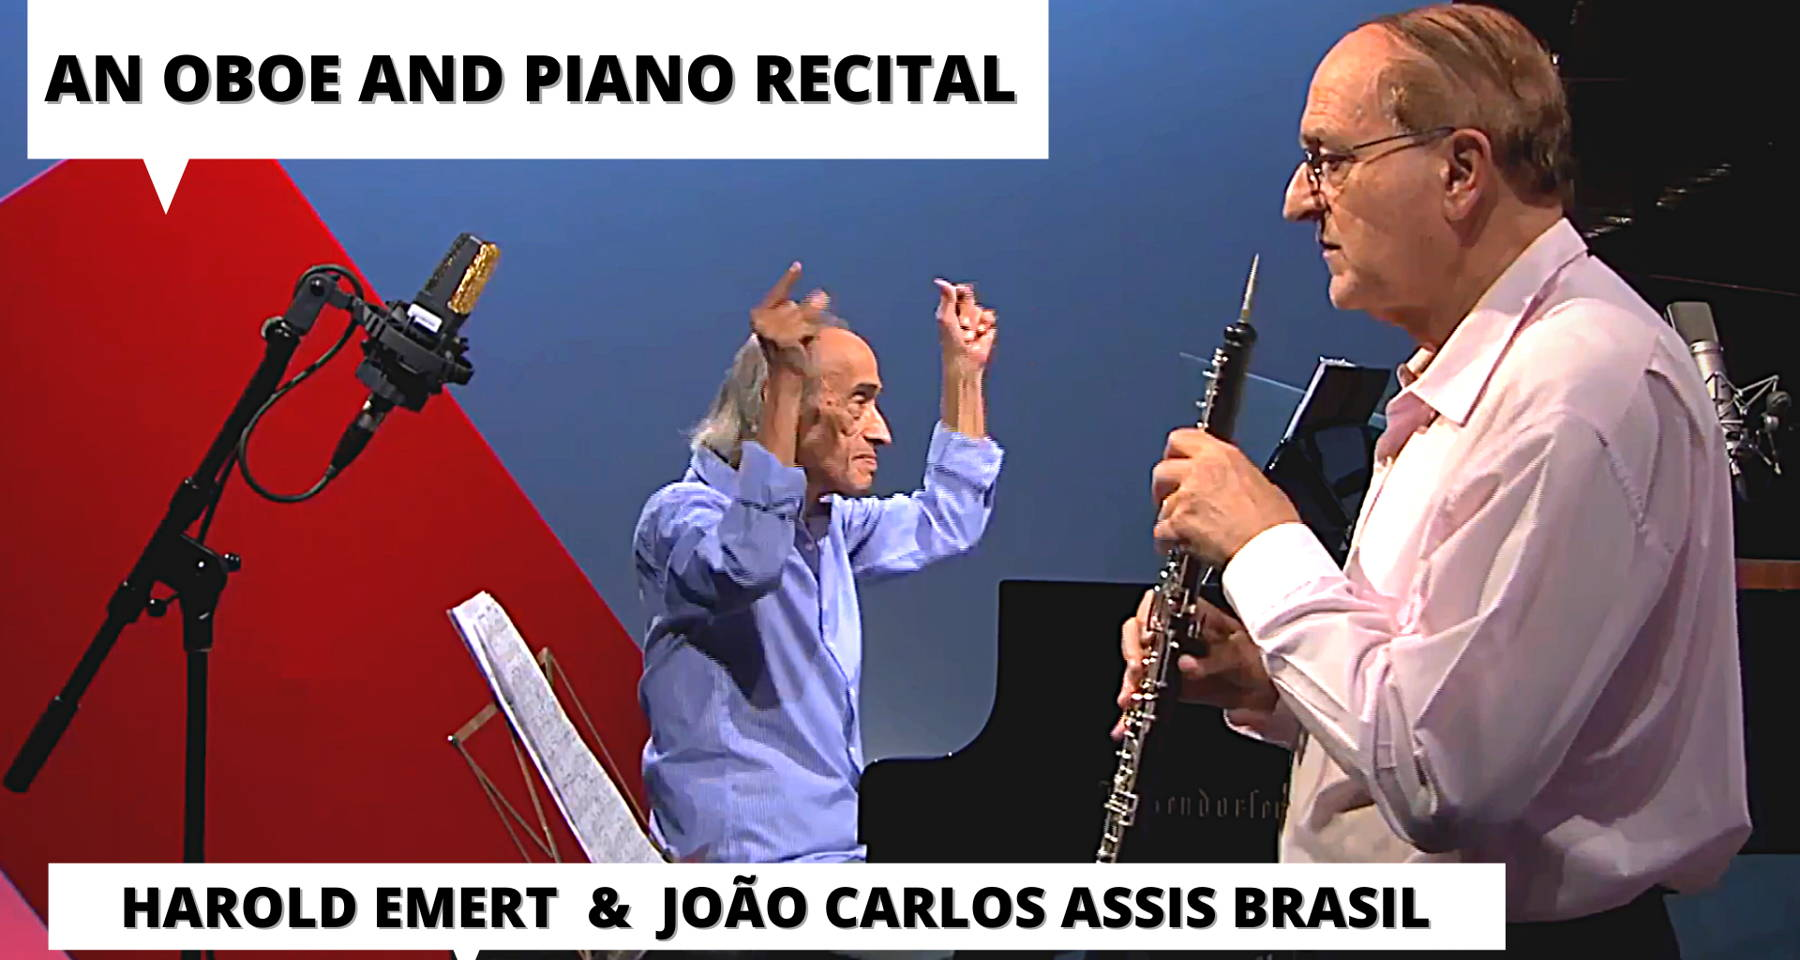 Harold Emert & João Assis Brasil - An oboe and piano recital from Ravel to Michel Legrand